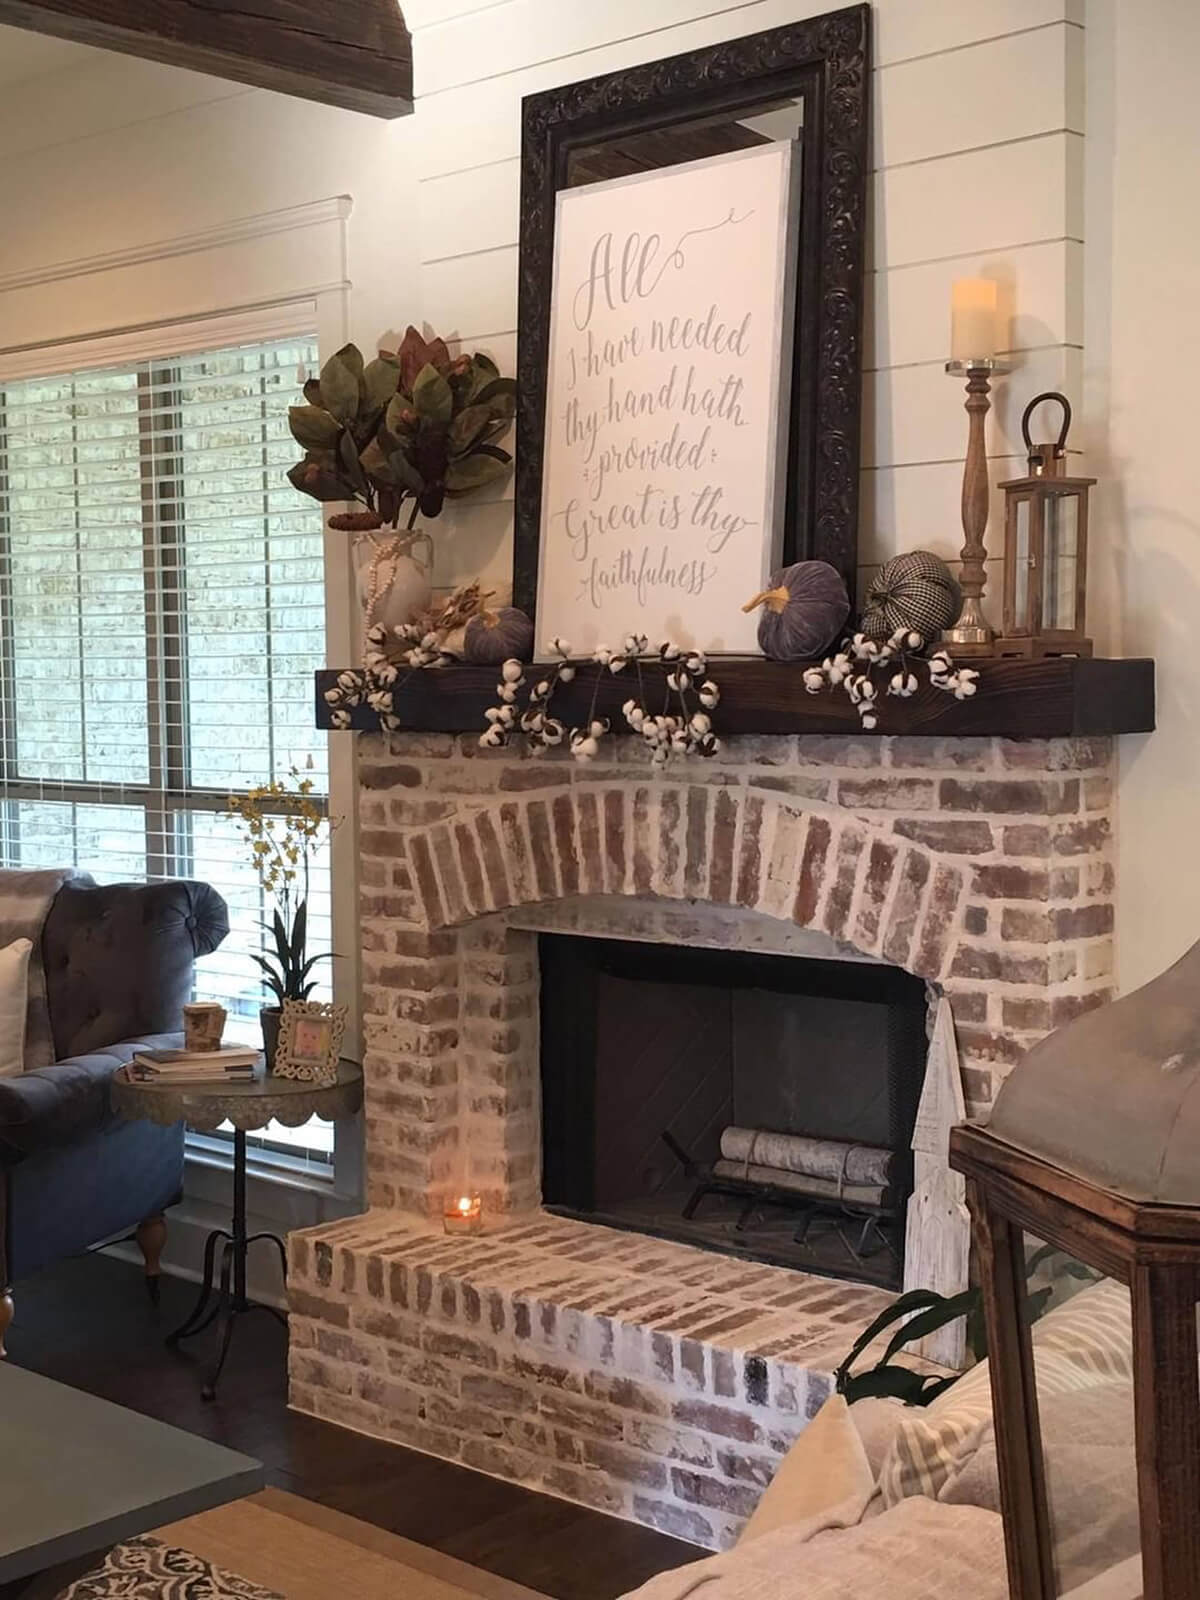 21 Best Stone Fireplace Ideas To Make Your Home Cozier In 2021